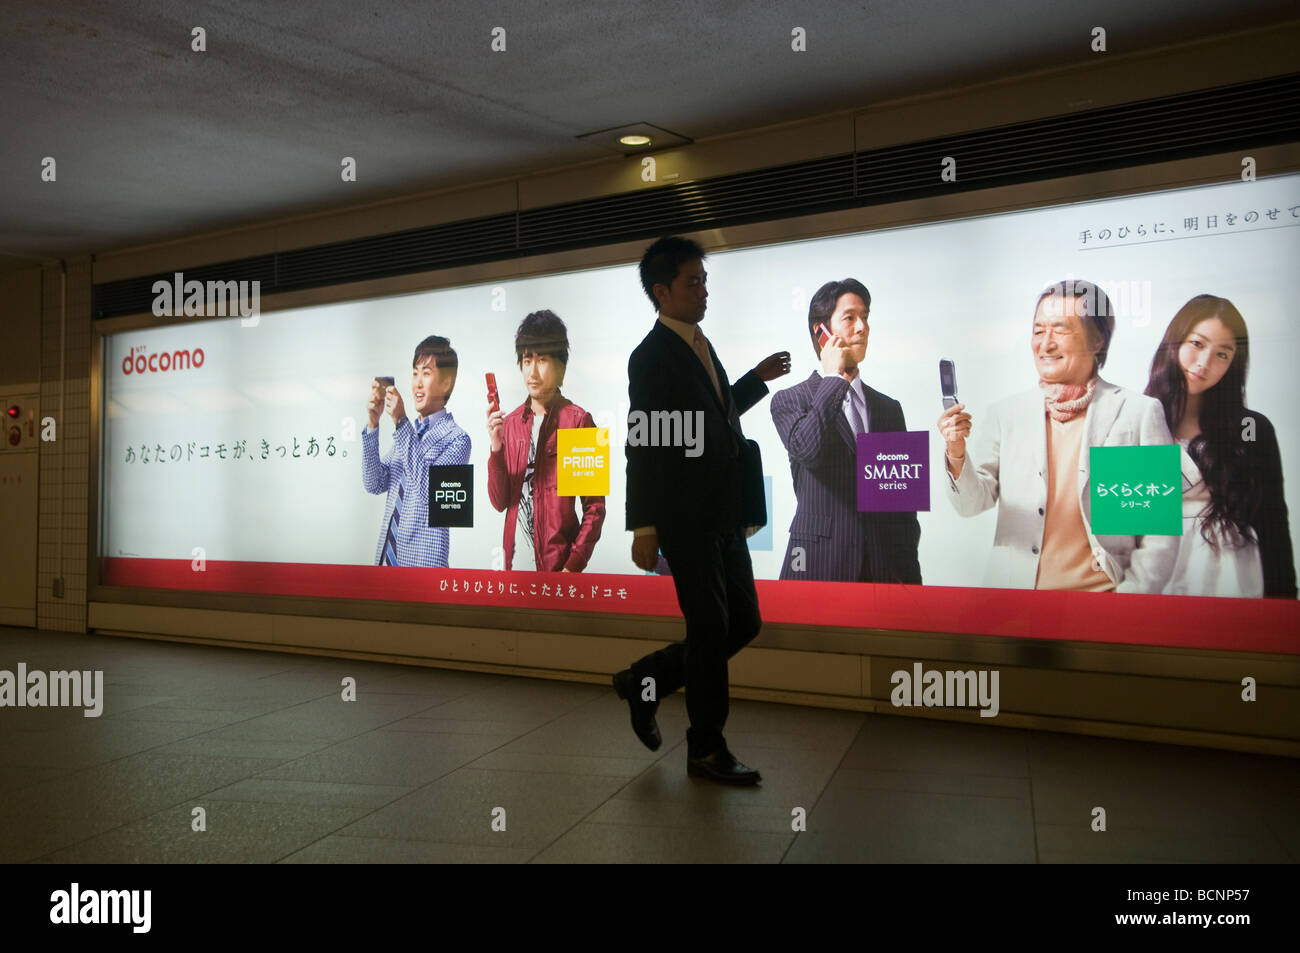 Pedestrian walk past billboard advertising DOCOMO the predominant mobile phone operator in Japan in an underground - Stock Image